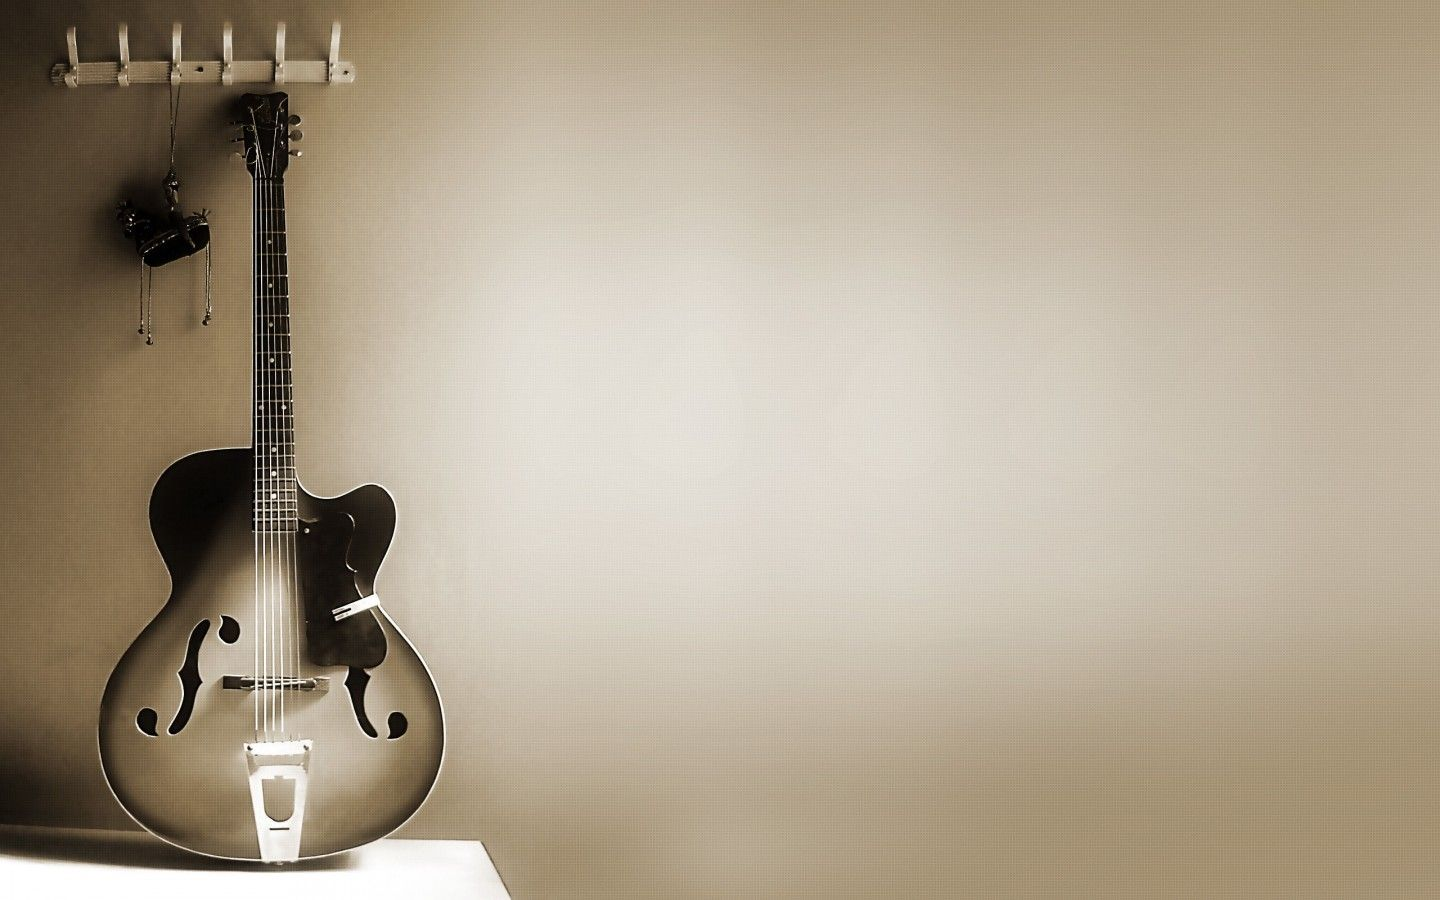 Guitar Hd New Wallpaper Full Free Wallpapers For You Pinterest